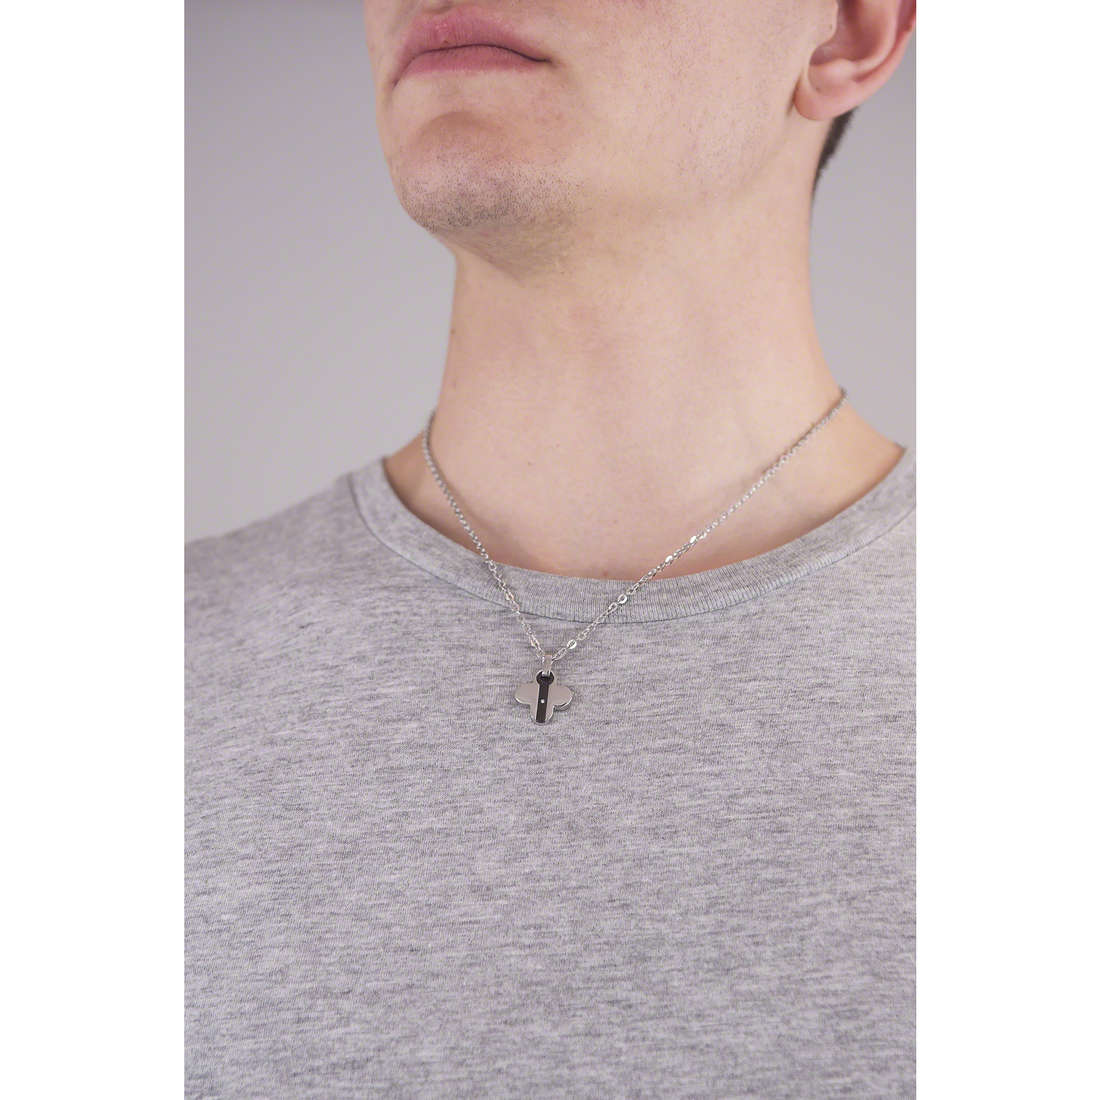 Comete colliers Basic homme UGL 339 indosso